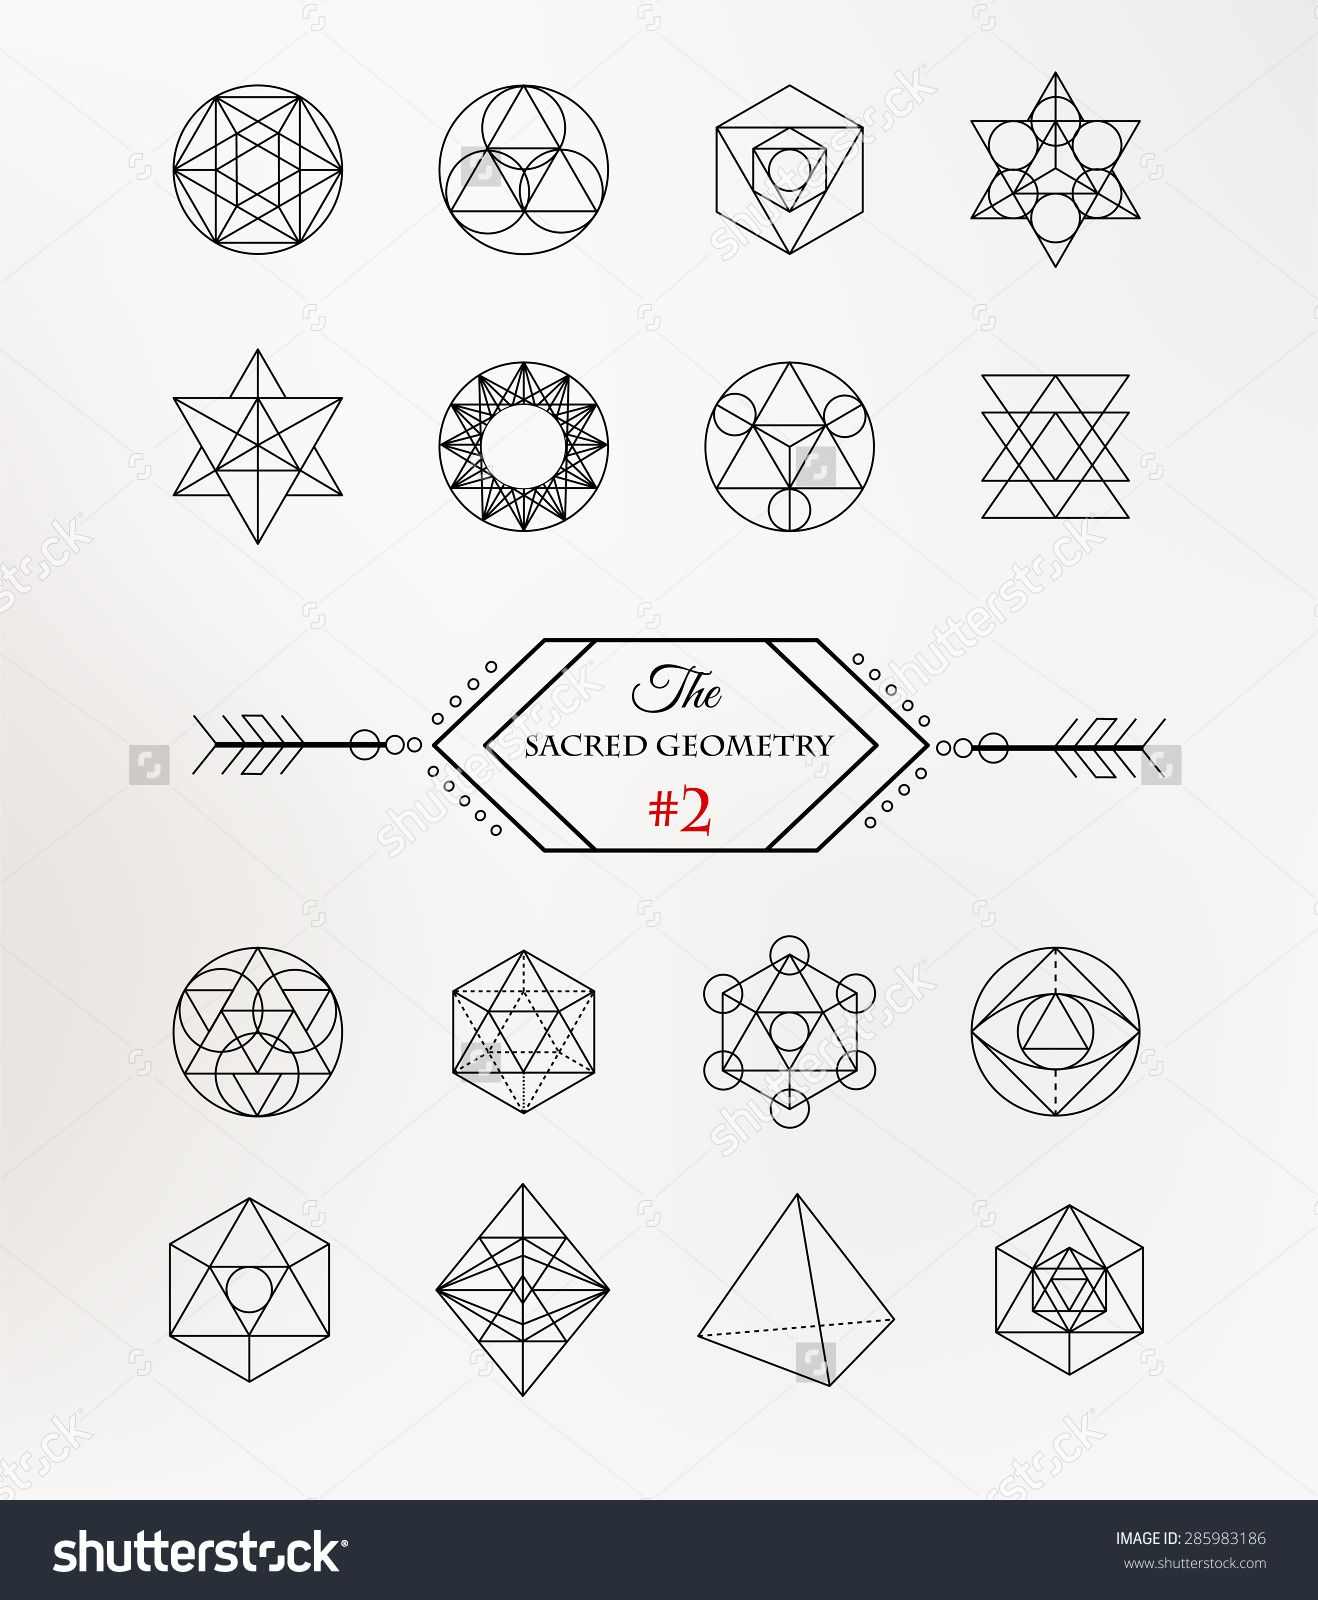 The platonic solids i sell these shapes cut from crystal sacred geometry alchemy religion philosophy spirituality hipster symbols buycottarizona